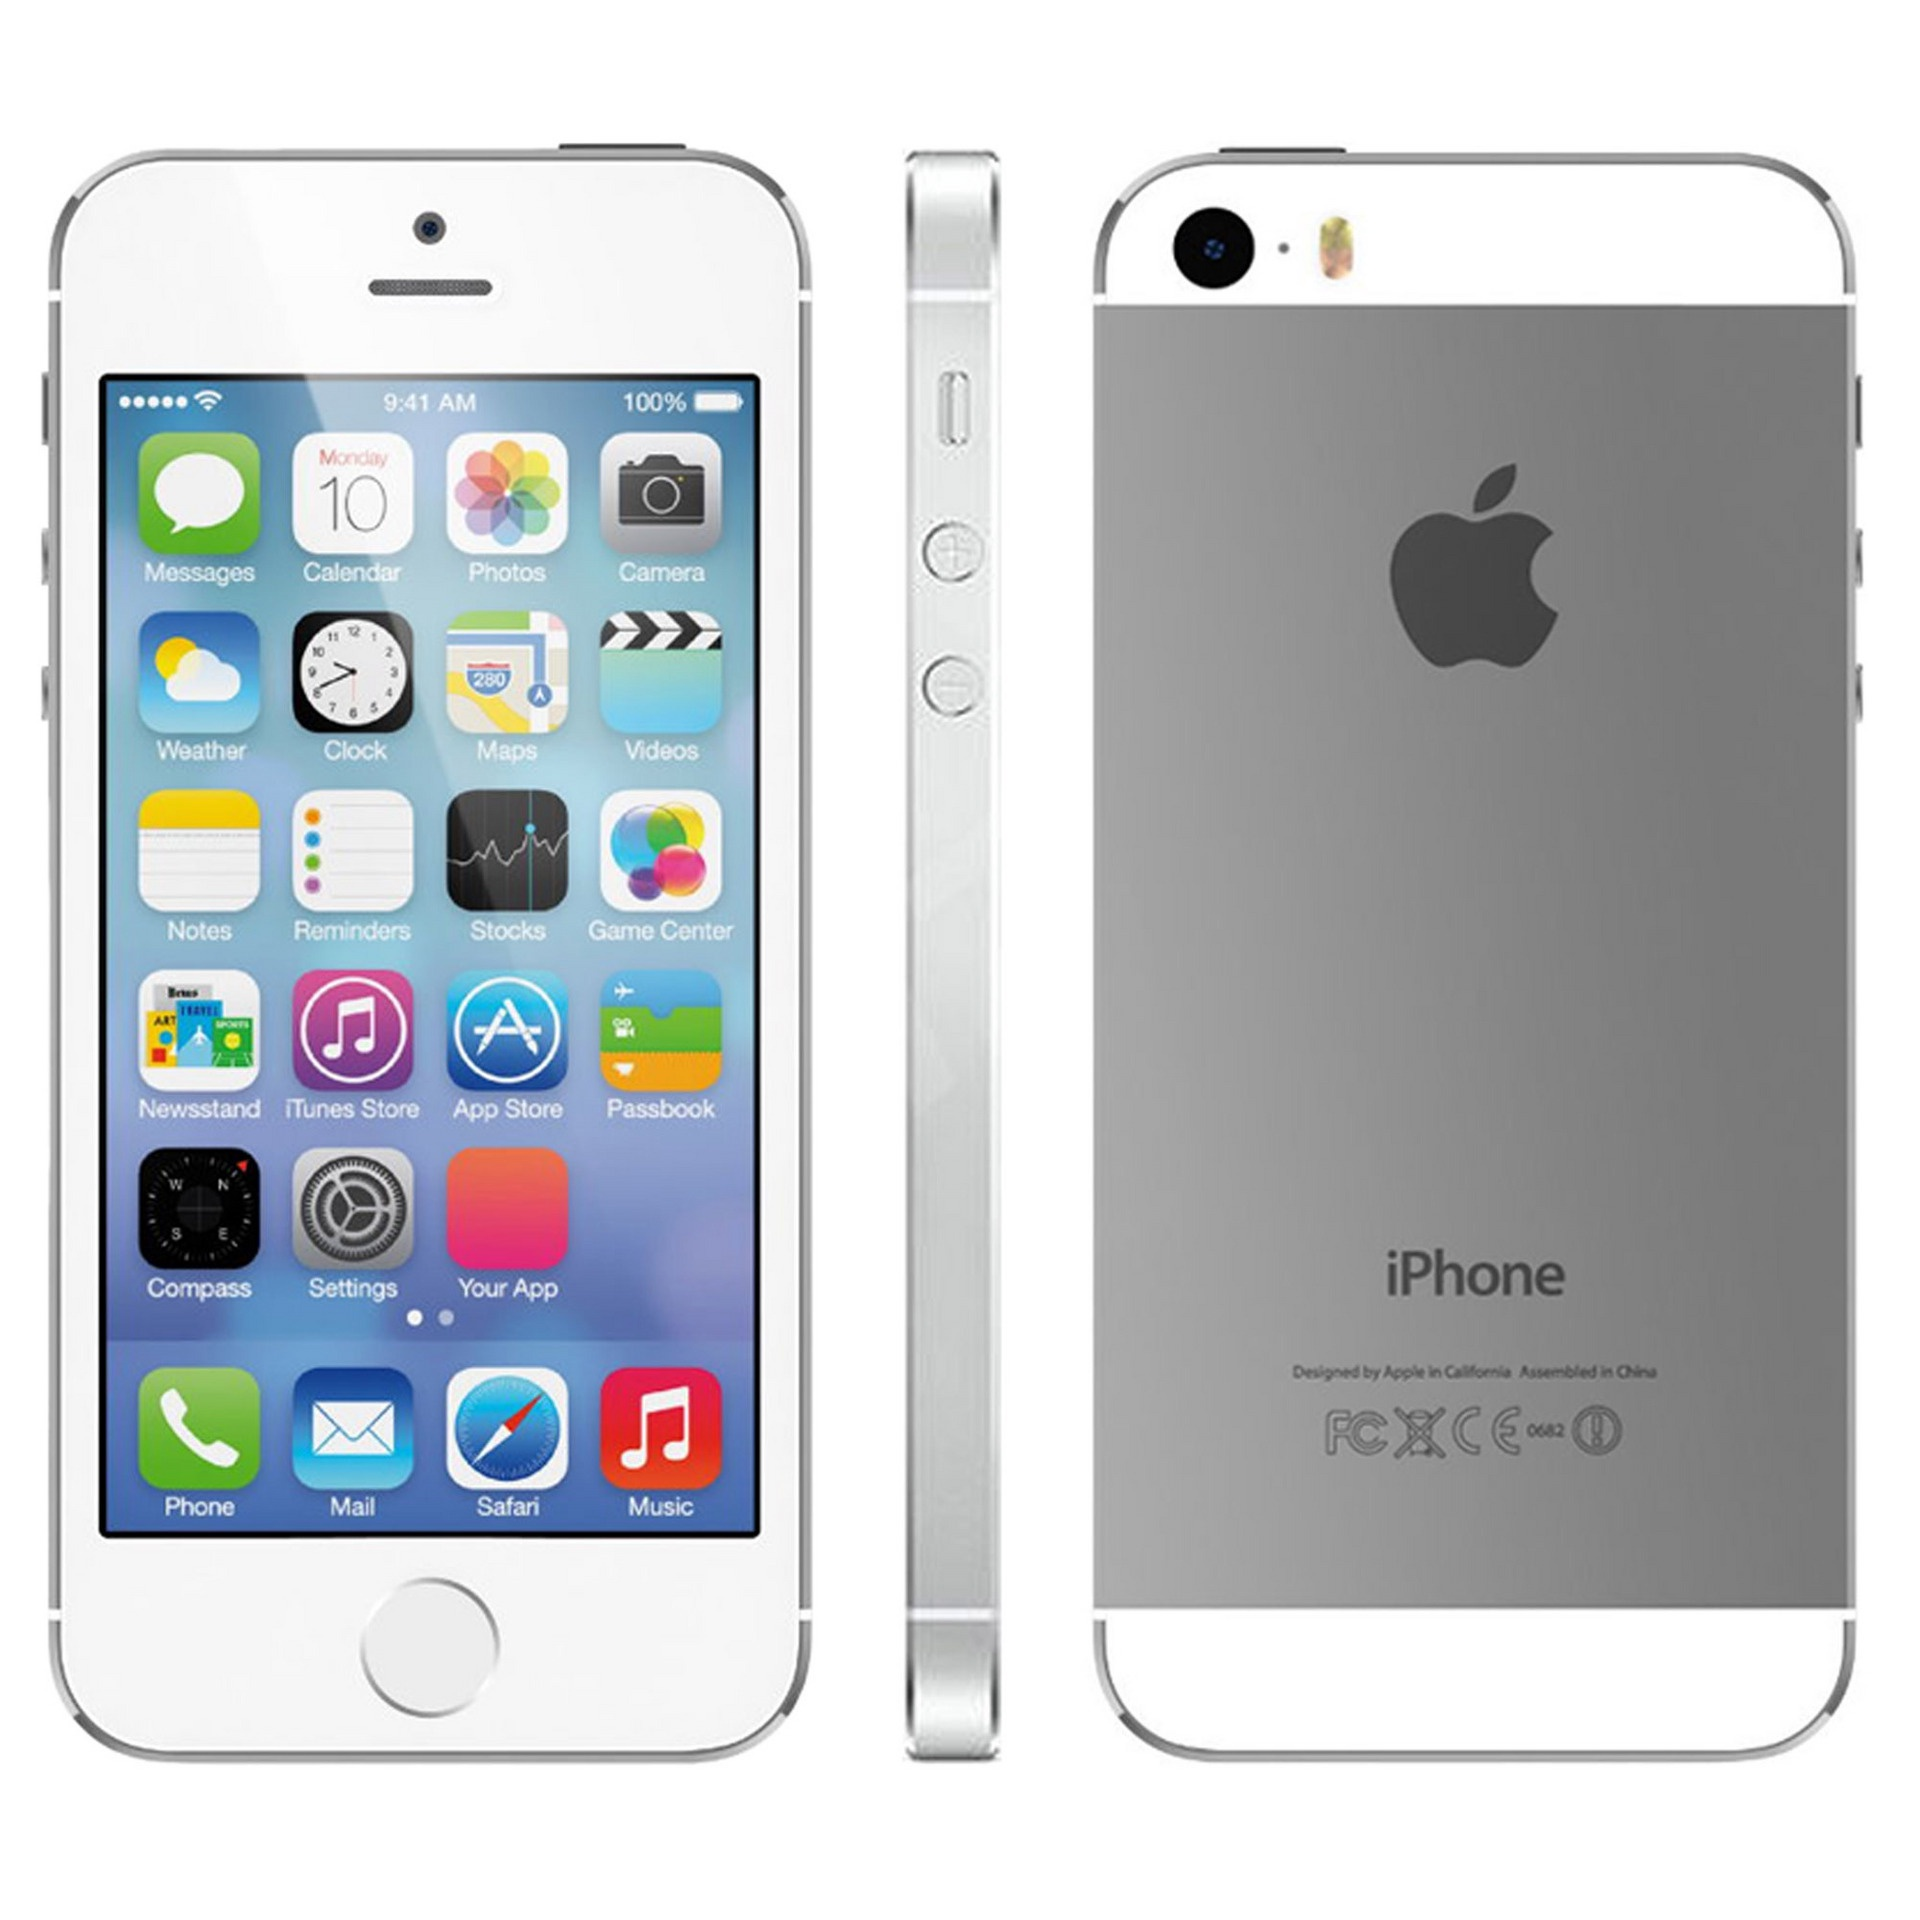 Nearly New Iphone 5s 32gb Silver The Ilab Voucher 3 2gb